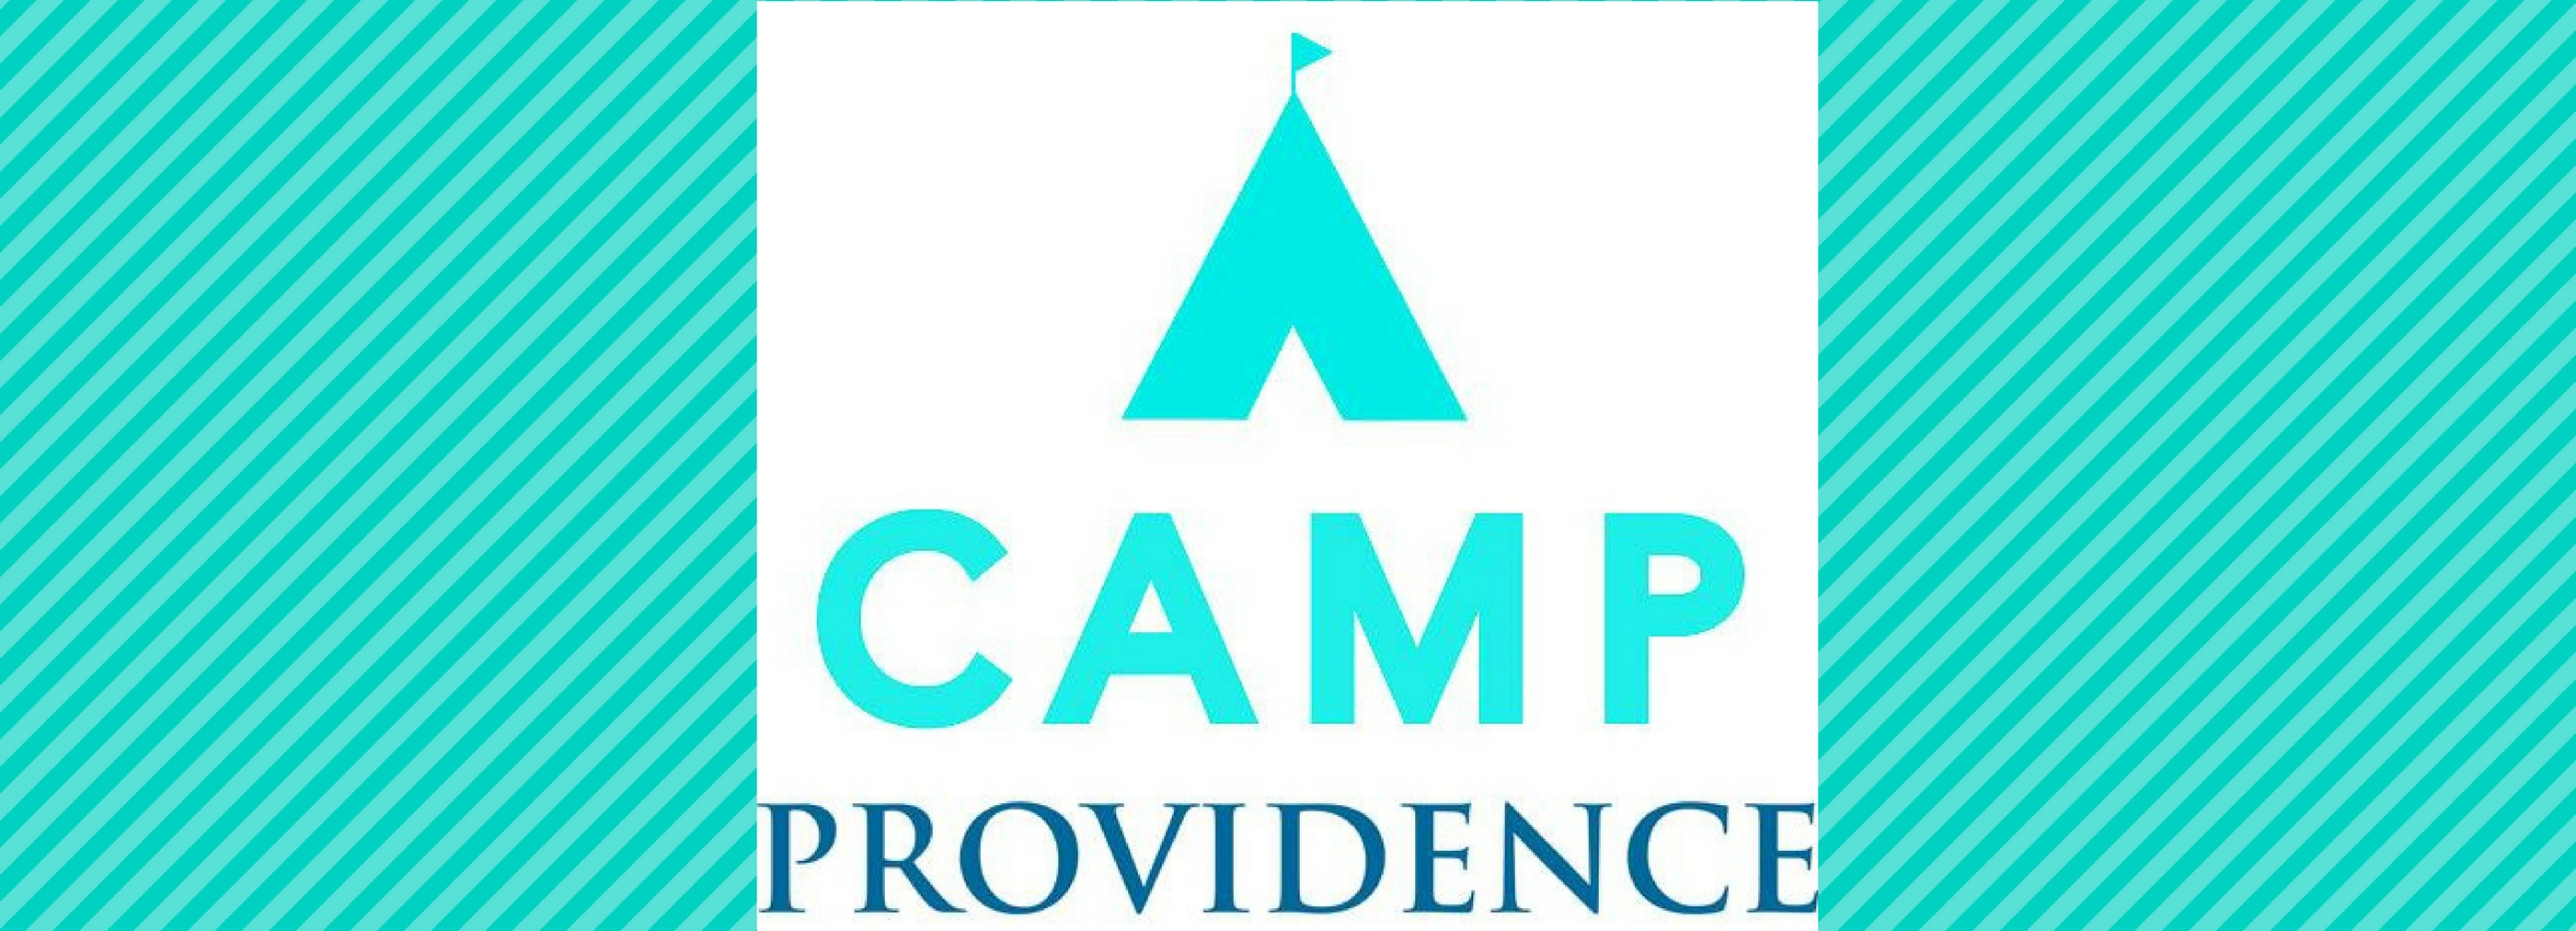 Camp Providenceed image